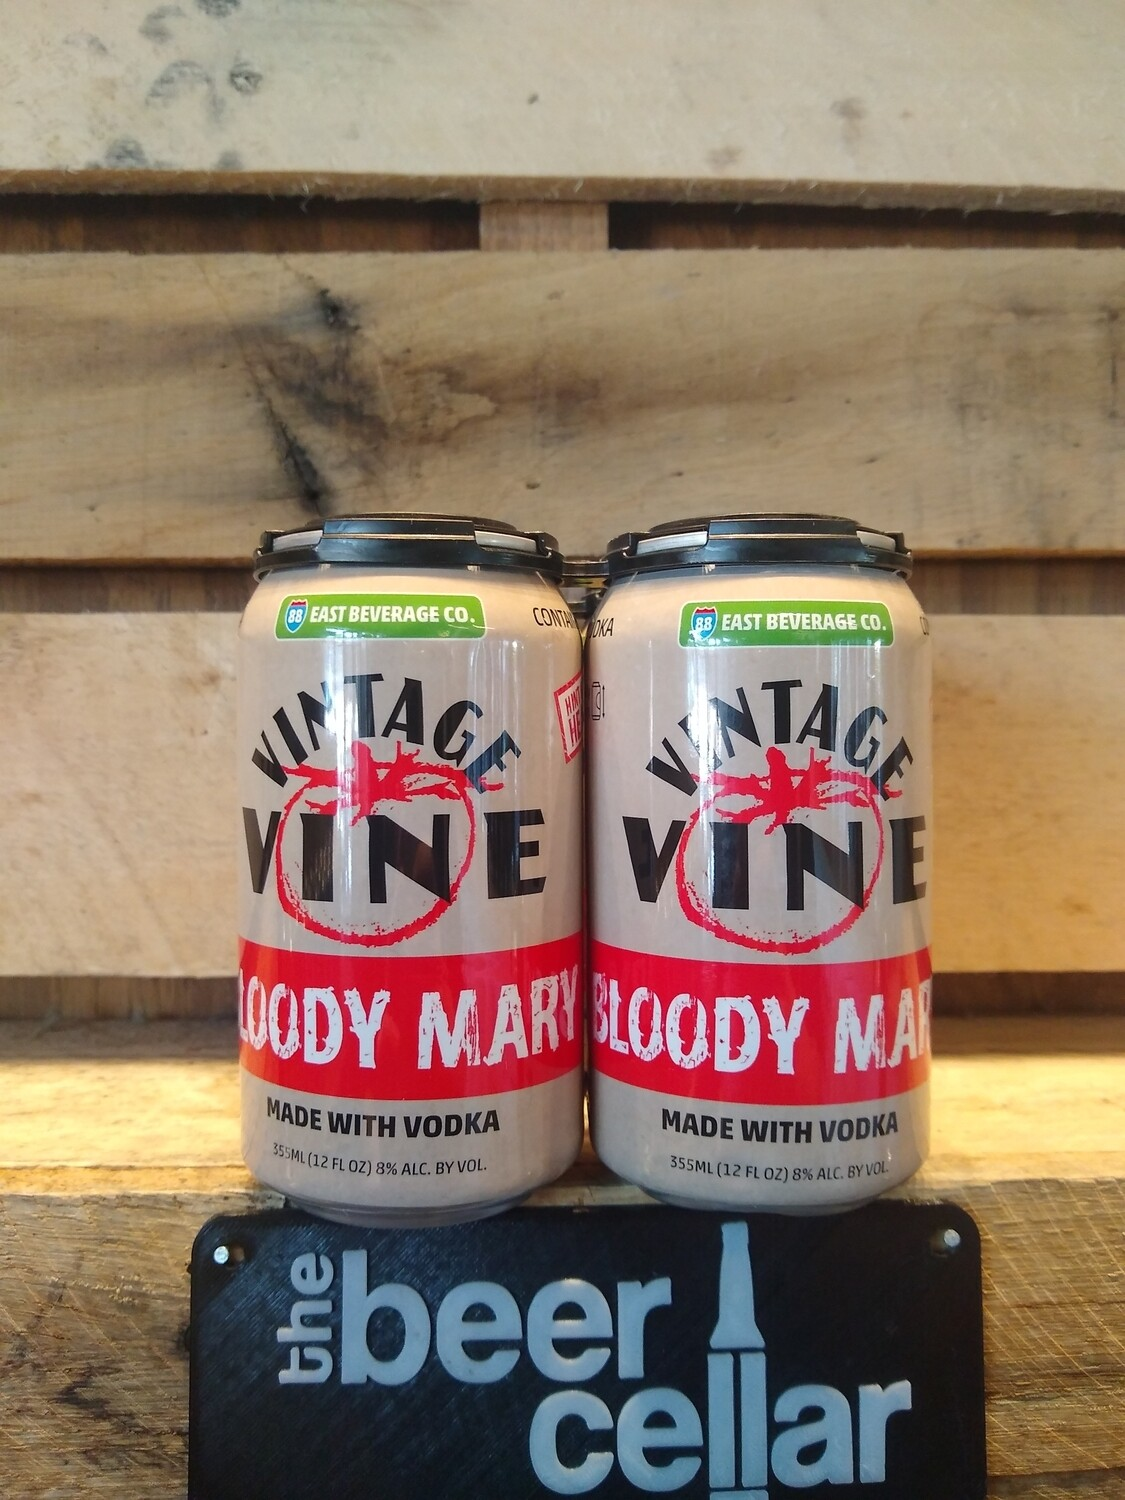 88 East Vintage Vine Bloody Mary 4pk